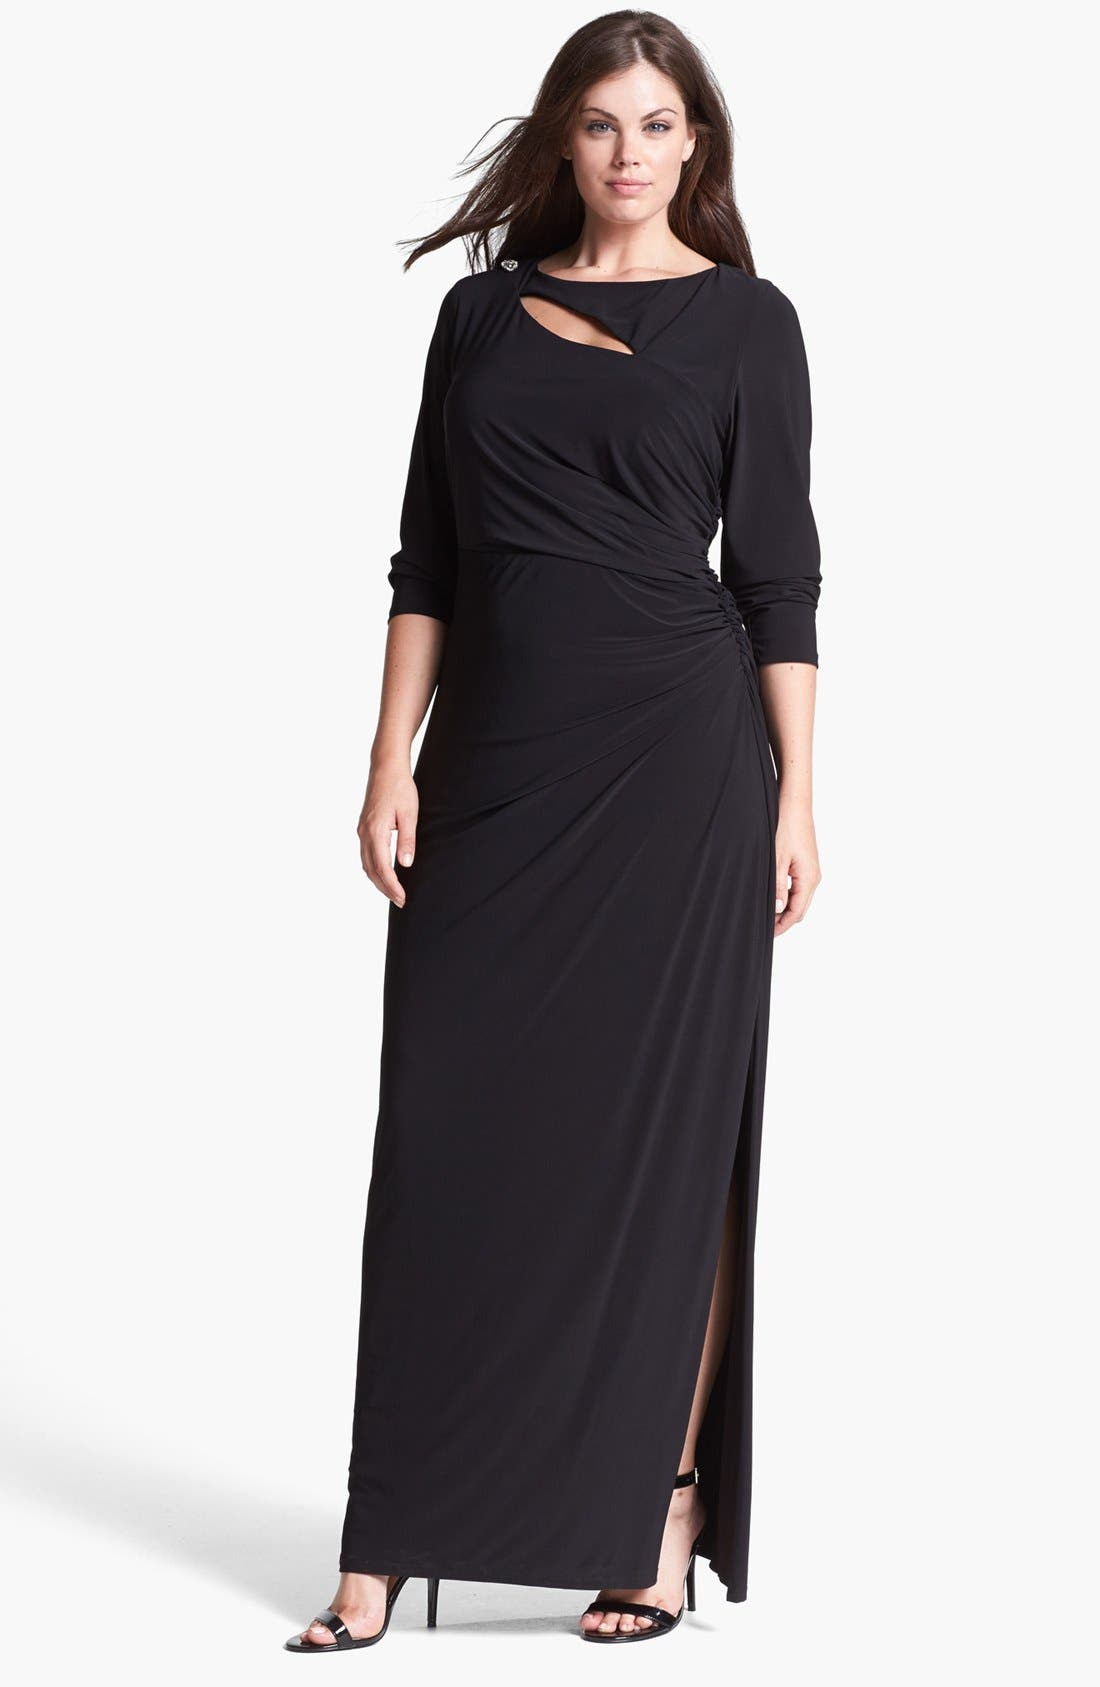 Alternate Image 1 Selected - Betsy & Adam Embellished Cutout Long Jersey Dress (Plus Size)